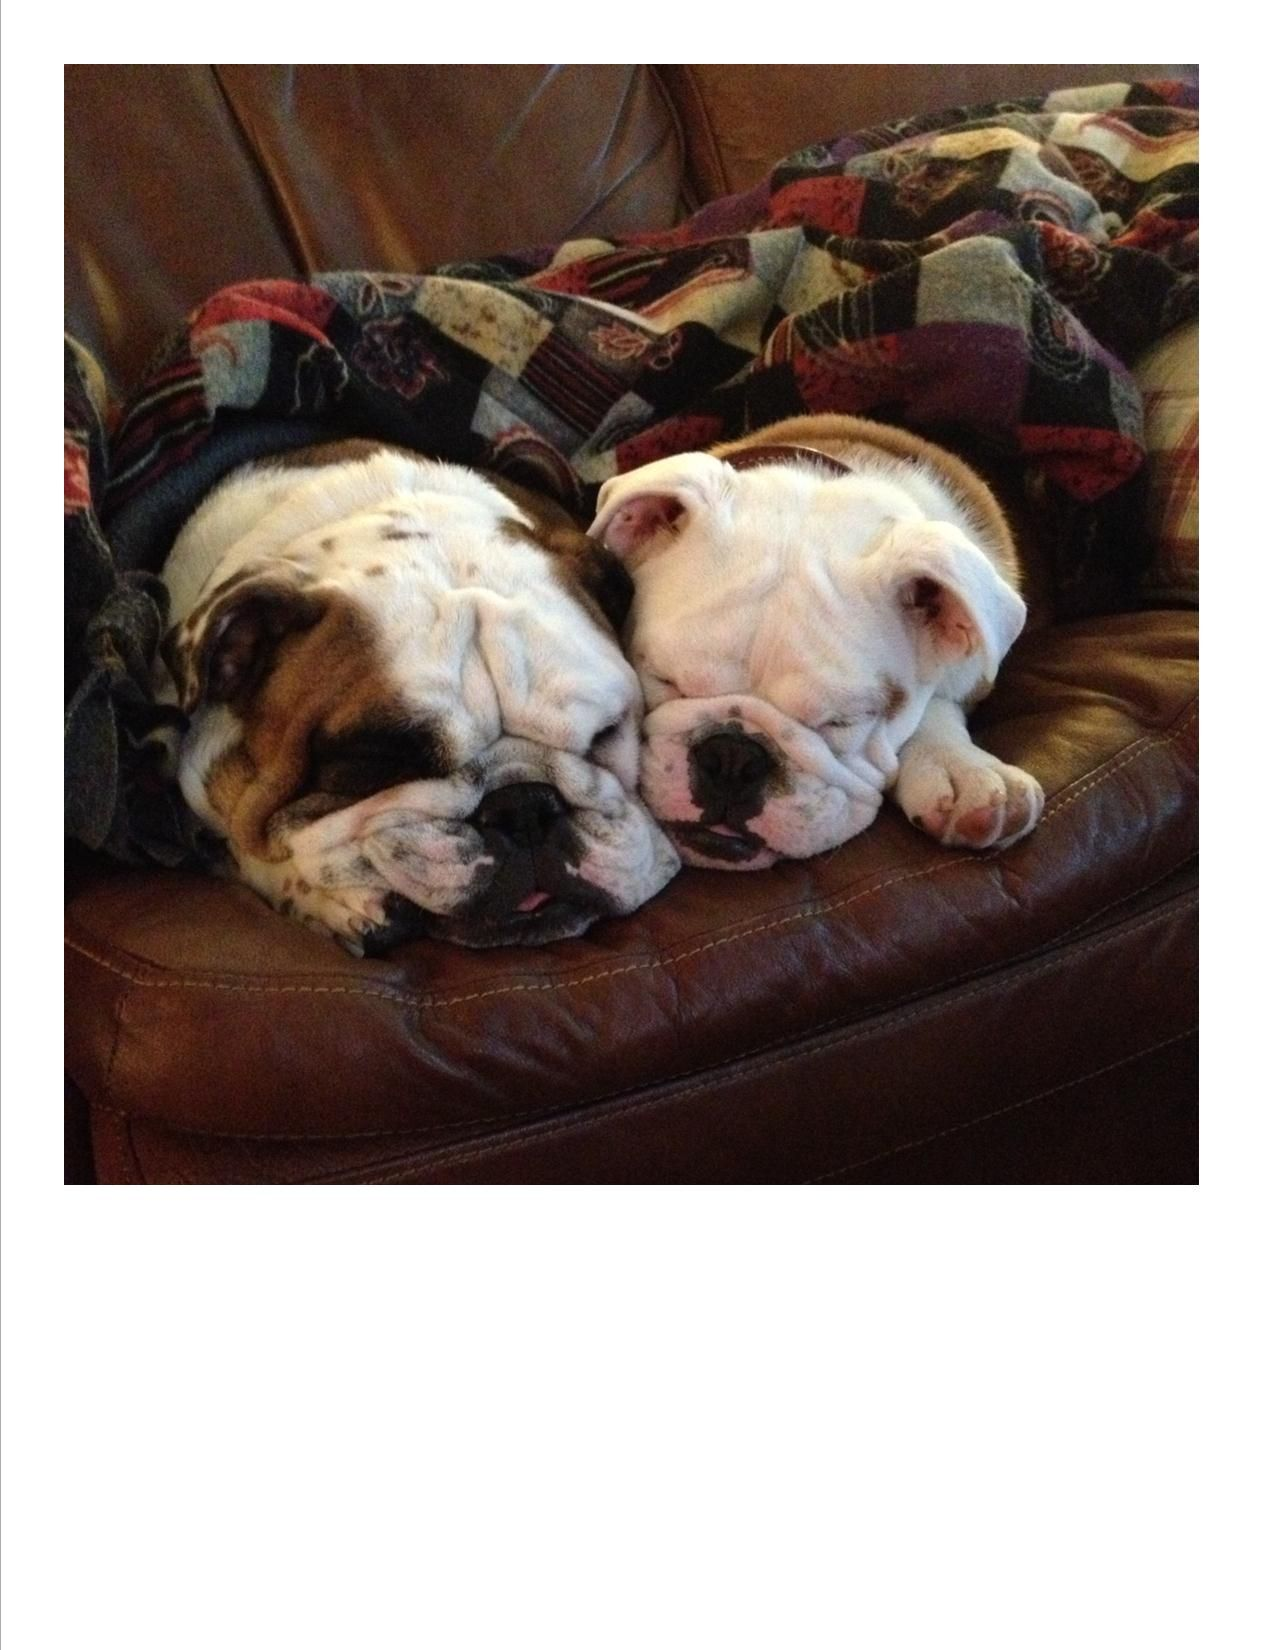 Winston And Chester Snuggle Buddies Bulldogs Snuggles Dogs